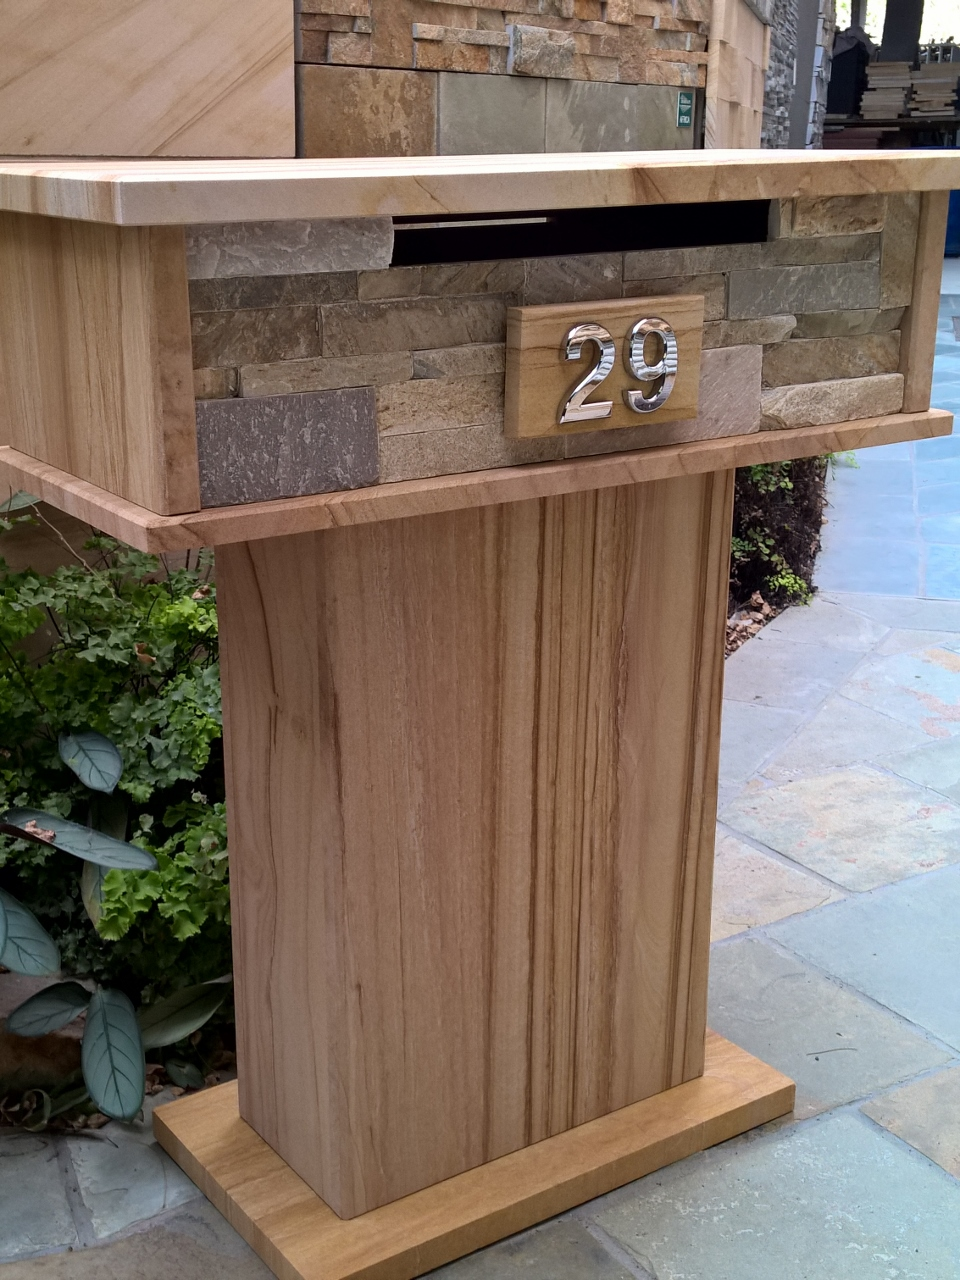 55. Extra wide sandstone letterbox with stackerstone front opening is wide enough to fit A4 magazines. Fitted with aluminium lock 2 key. Size 760x340 Hight 870mm $690